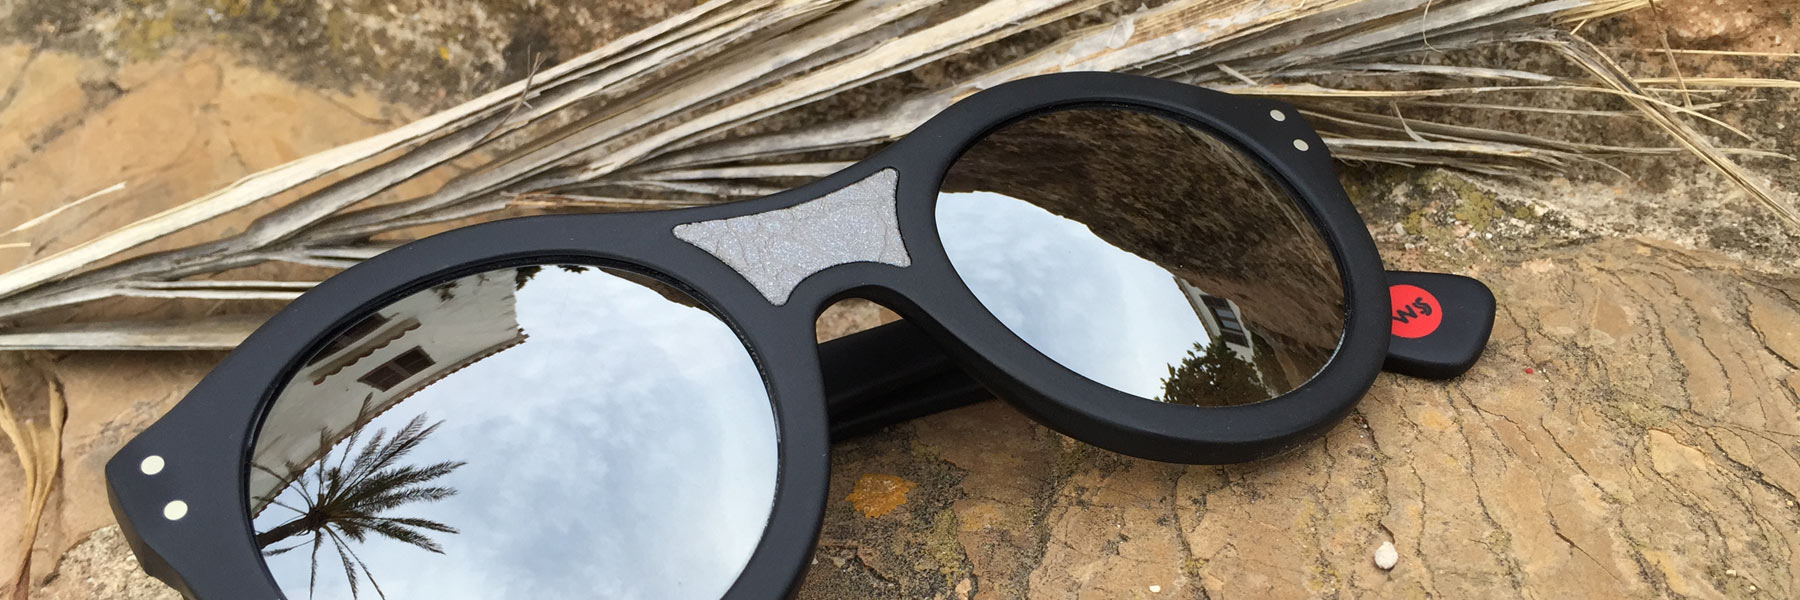 Wilde-Sunglasses-EXODUS-new-Collection-Barcelona_madrid_handcrafted_best_atore_2.jpg